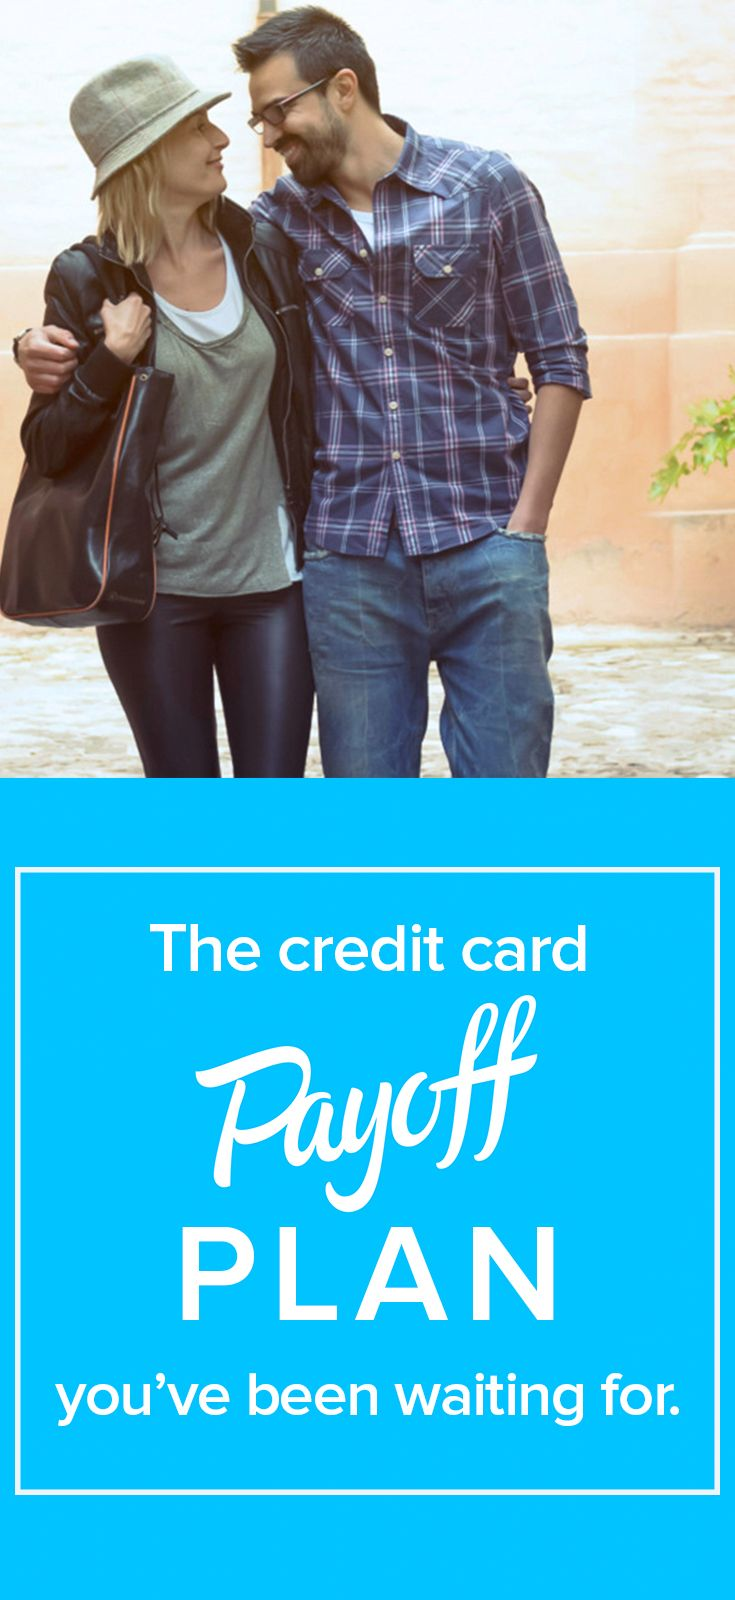 royal bank how to cancel credit card payments